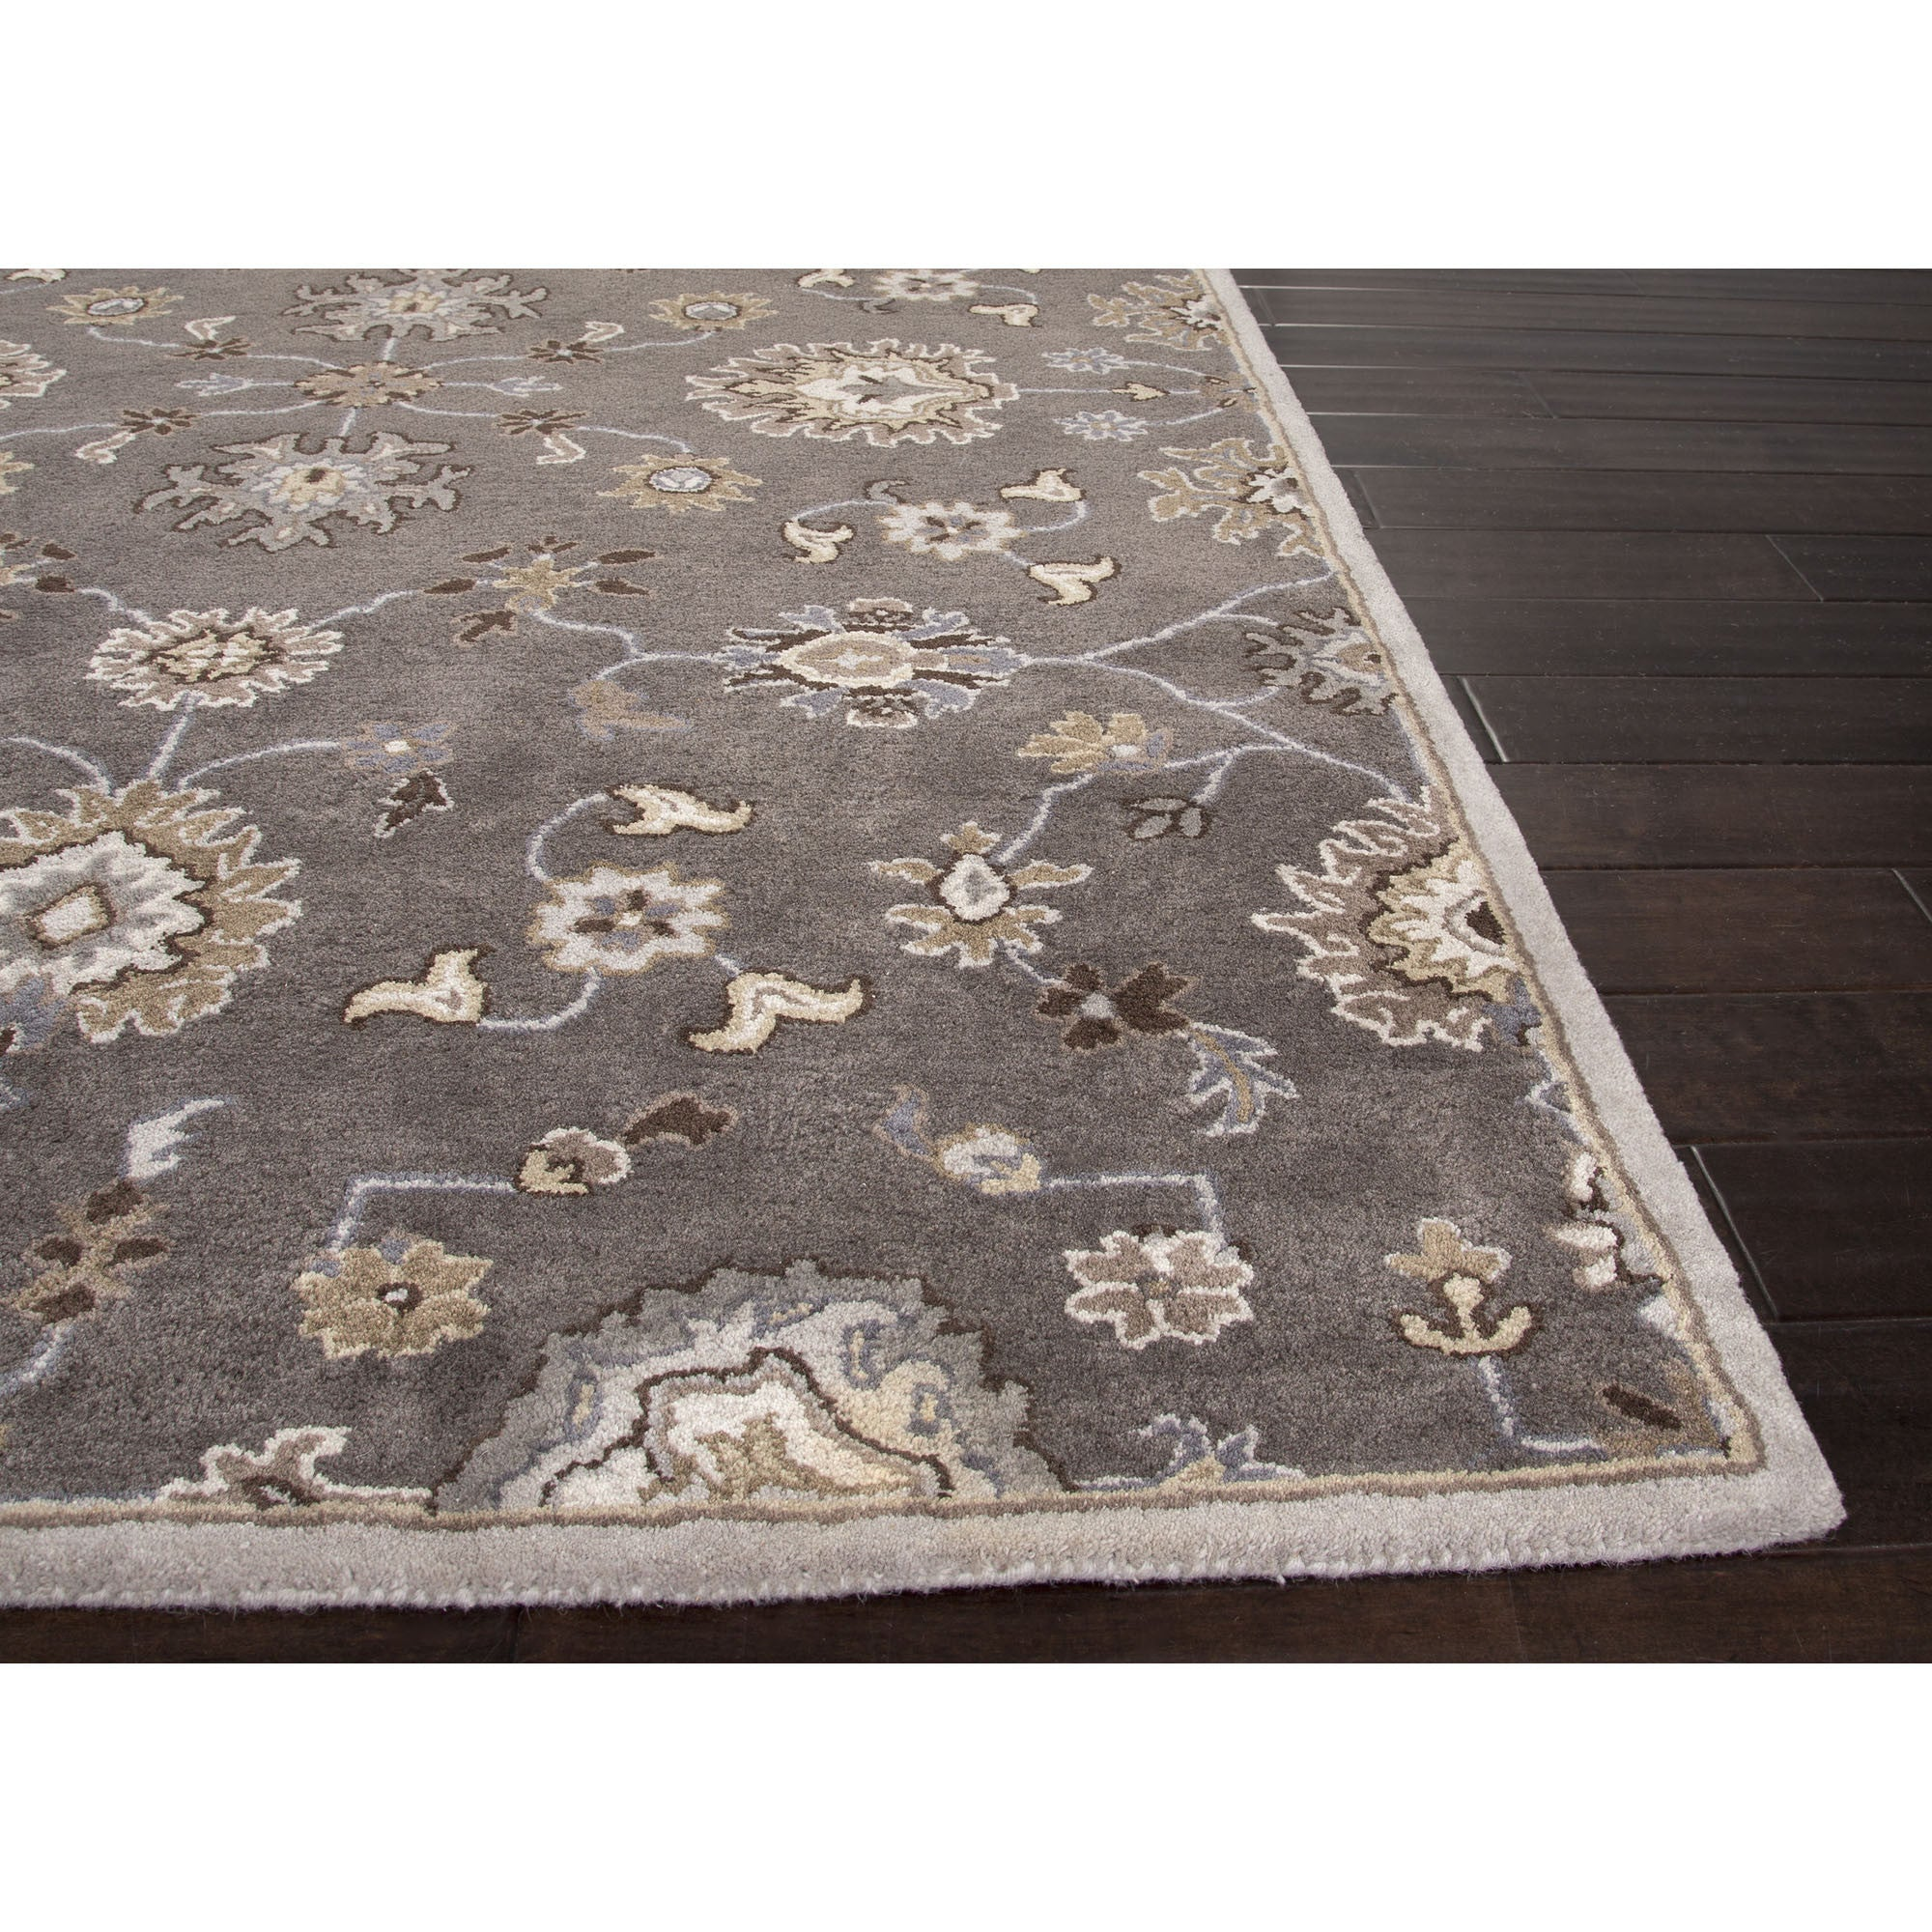 Oriental Rugs Grand Rapids: Jaipur Rugs Transitional Oriental Pattern Gray/Ivory Wool